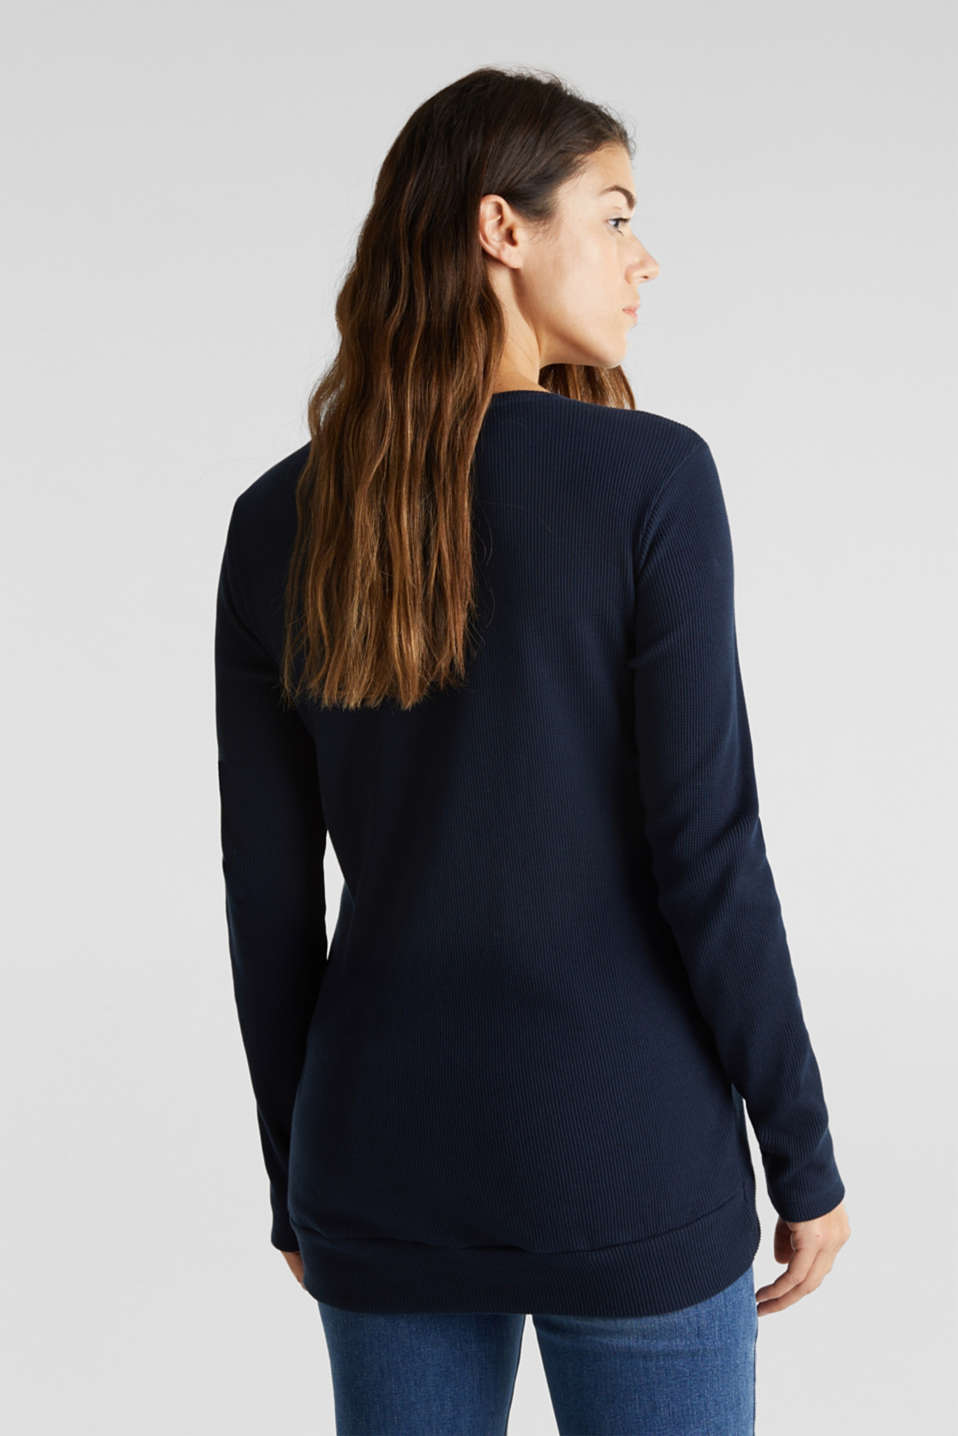 Piqué long sleeve top with a draped effect, 100% cotton, LCNIGHT BLUE, detail image number 3